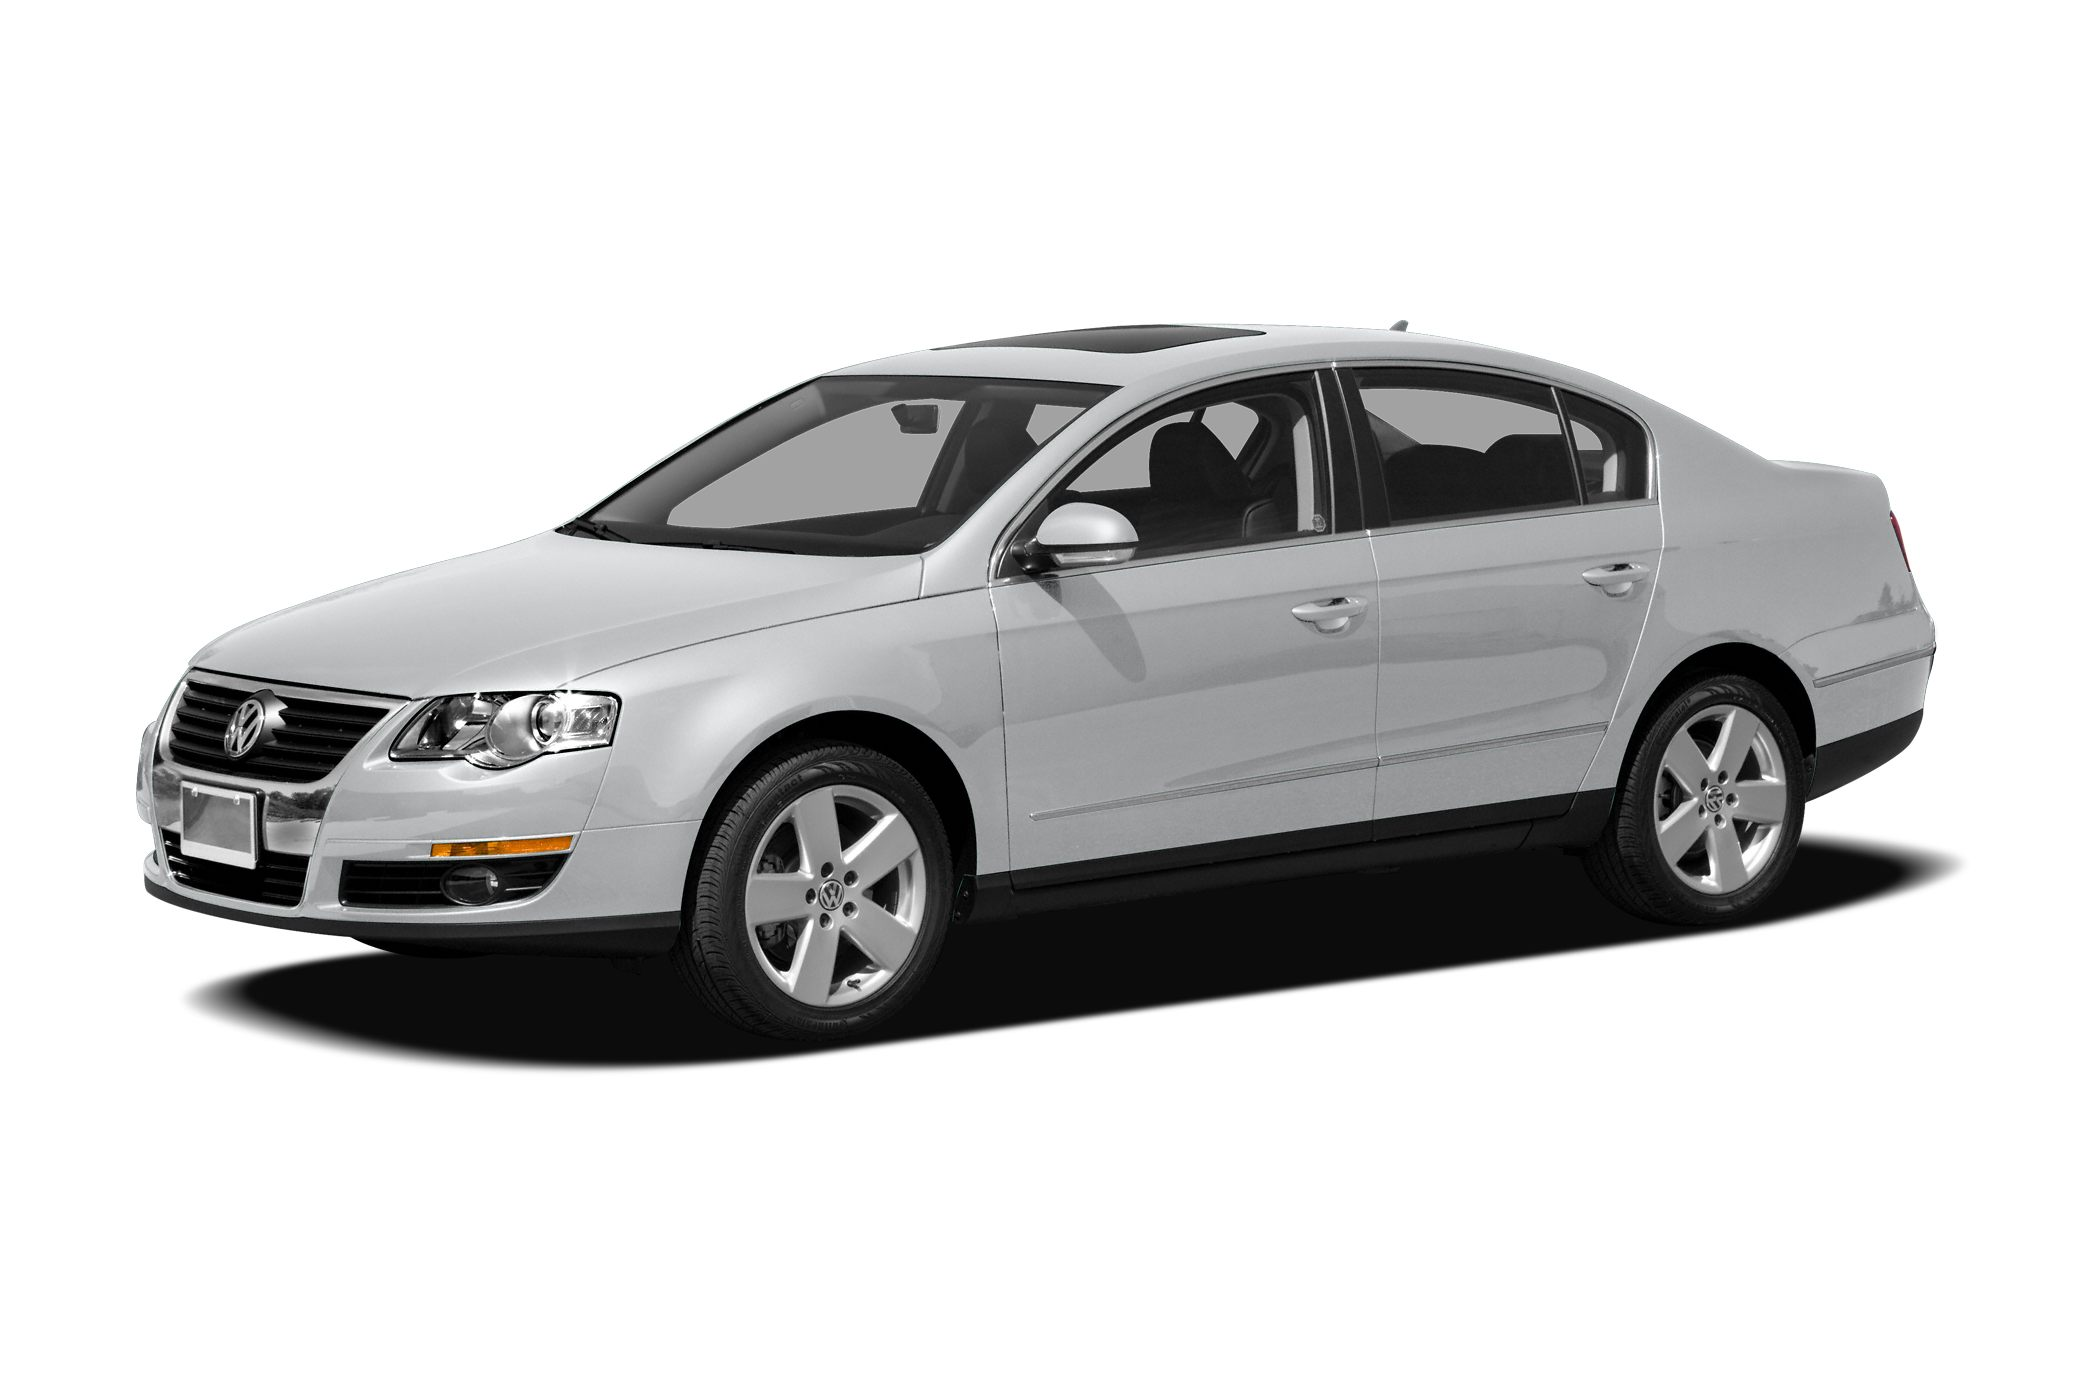 2007 Volkswagen Passat 2.0T Sedan for sale in Rock Hill for $7,999 with 67,486 miles.